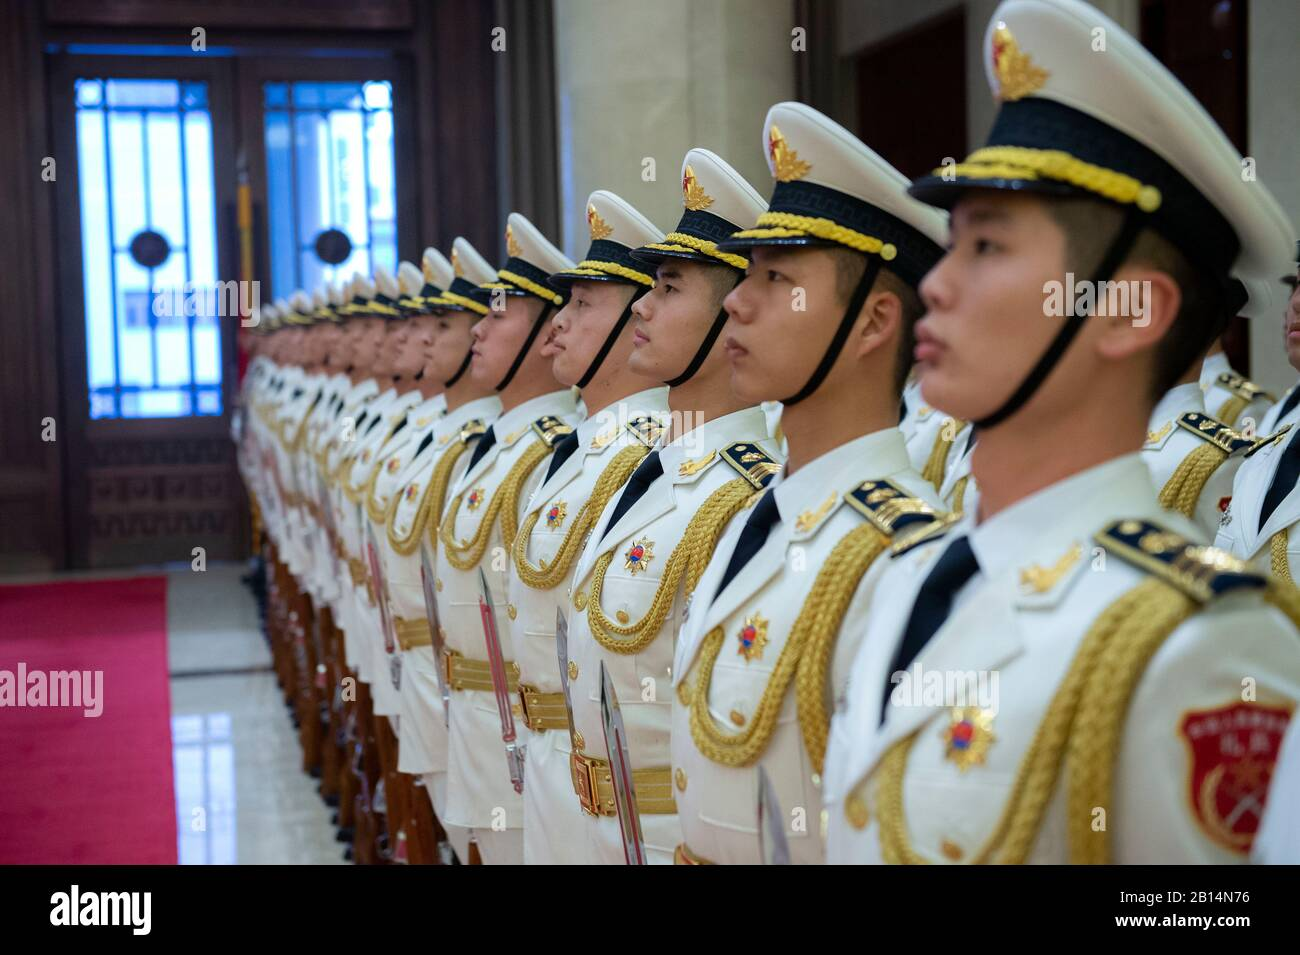 Chinese sailors stand in formation before a visit by Chief of Naval Operations (CNO) Adm. John Richardson to the People's Liberation Army (Navy) (PLA(N)) headquarters in Beijing Jan. 14, 2019. Richardson is on a three-day visit to Beijing and Nanjing to continue the ongoing dialog between the two heads of navy and encourage professional interactions at sea, specifically addressing risk reduction and operational safety measures to prevent unwanted and unnecessary escalation. (U.S. Navy Photo by Chief Mass Communication Specialist Elliott Fabrizio) Stock Photo